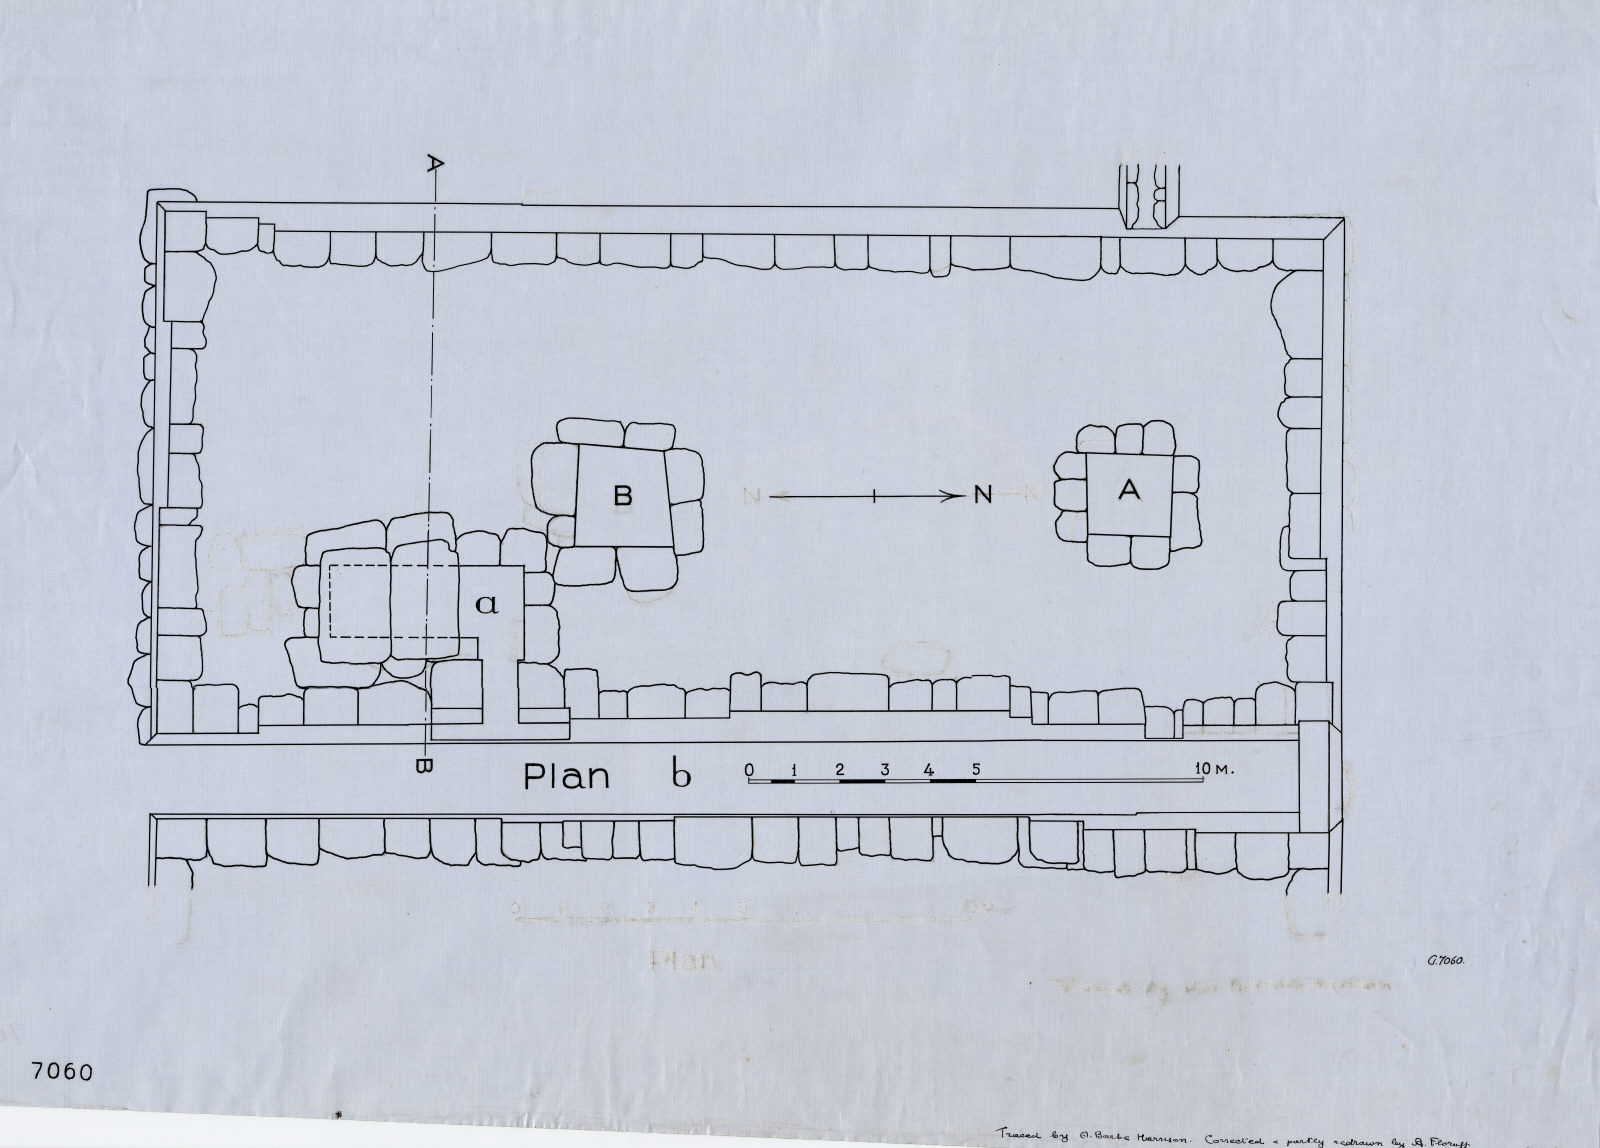 Maps and plans: G 7060, Plan